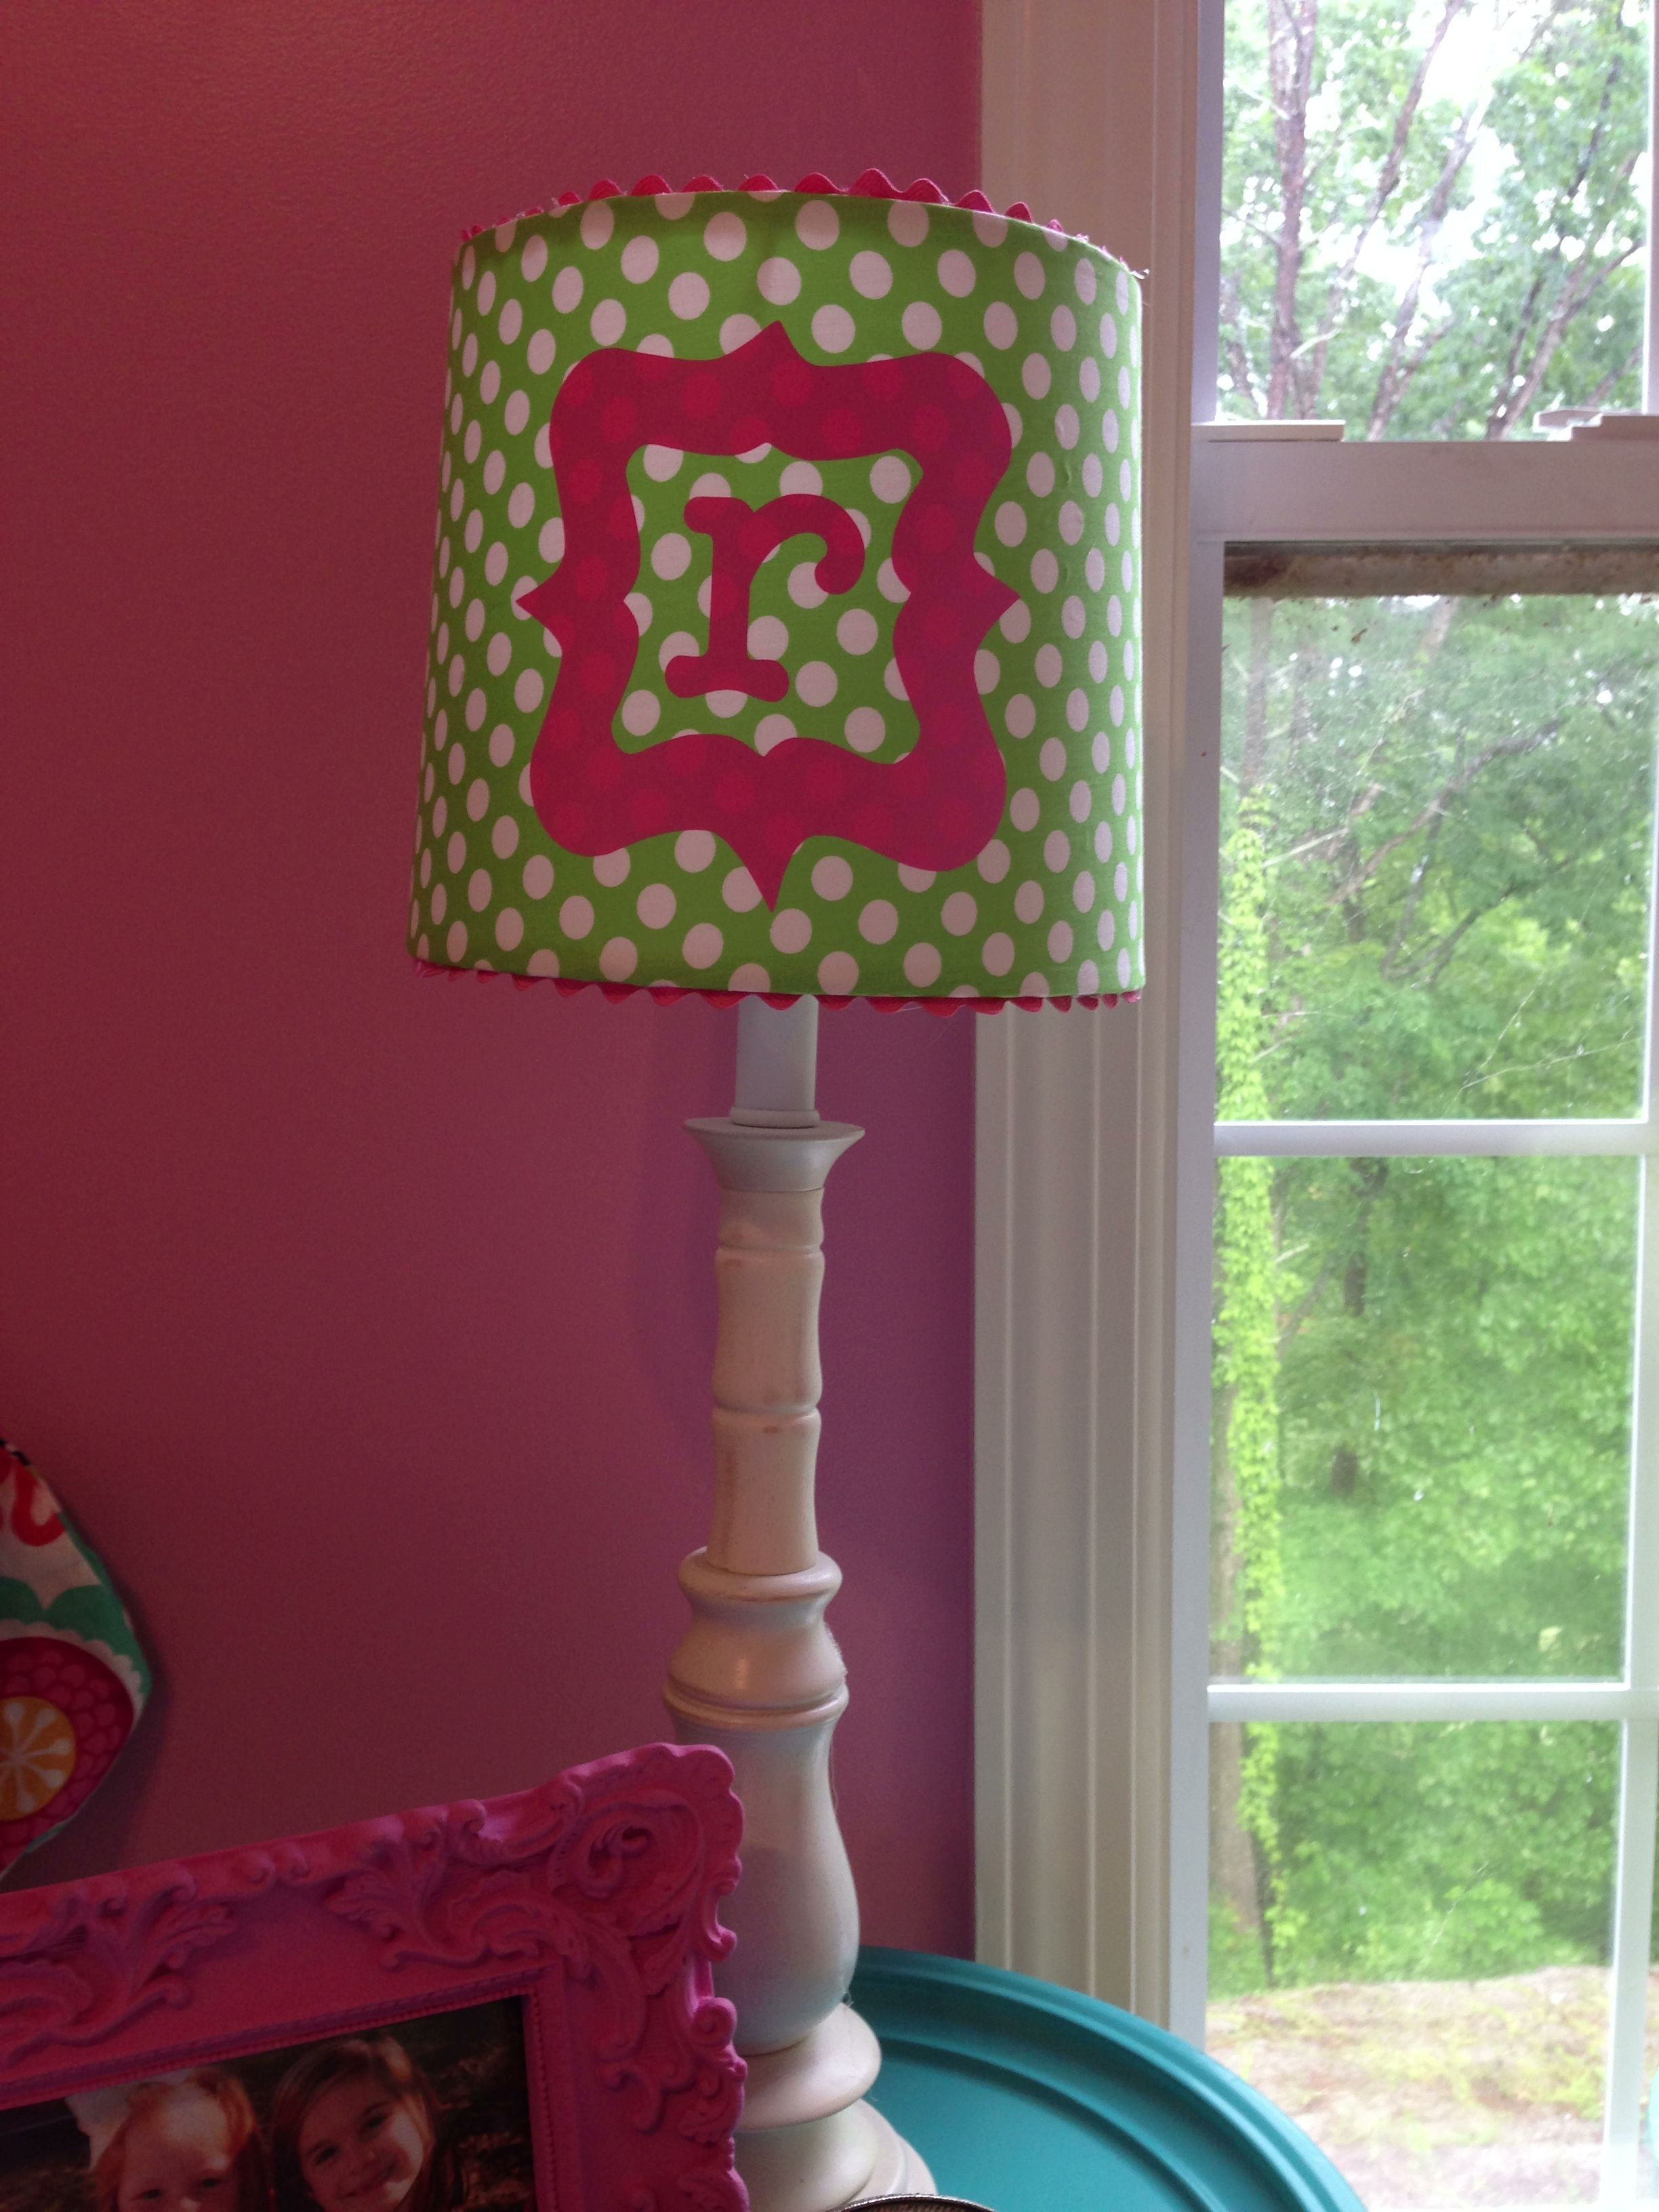 Hobby Lobby Lamp Shades Self Adhesive Lamp Shade From Hobby Lobby With A Vinyl Design From